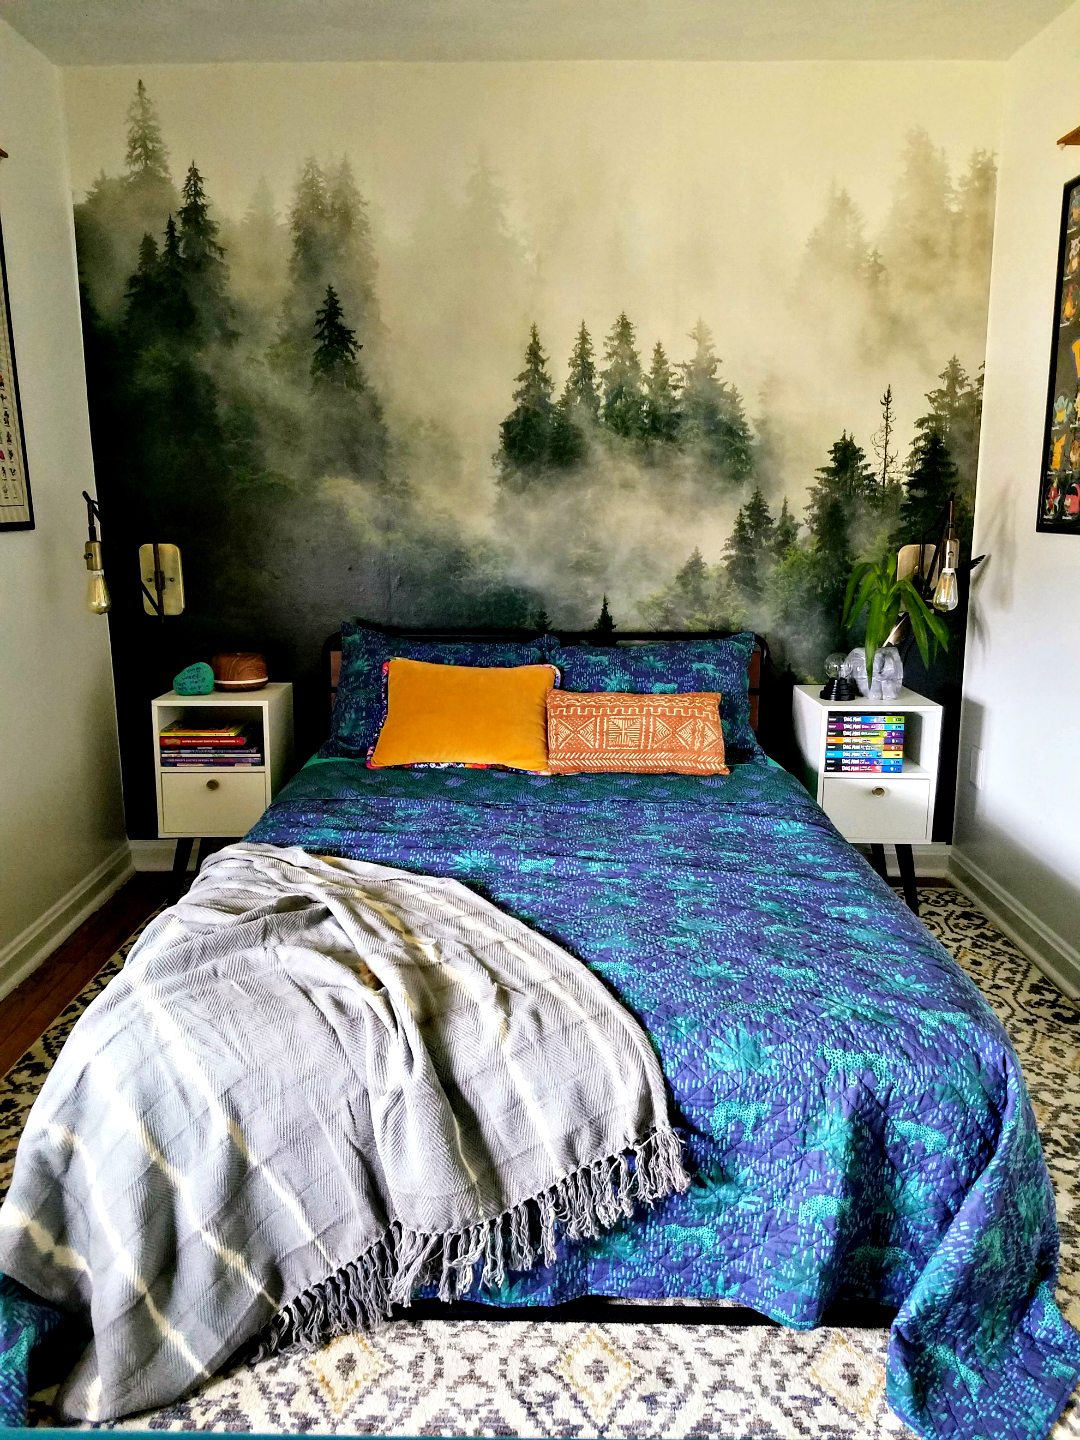 Designed A Kids Room - Big Impact Low Effort Design  Photowall Mural Accent Wall - TheBohoAbode blog